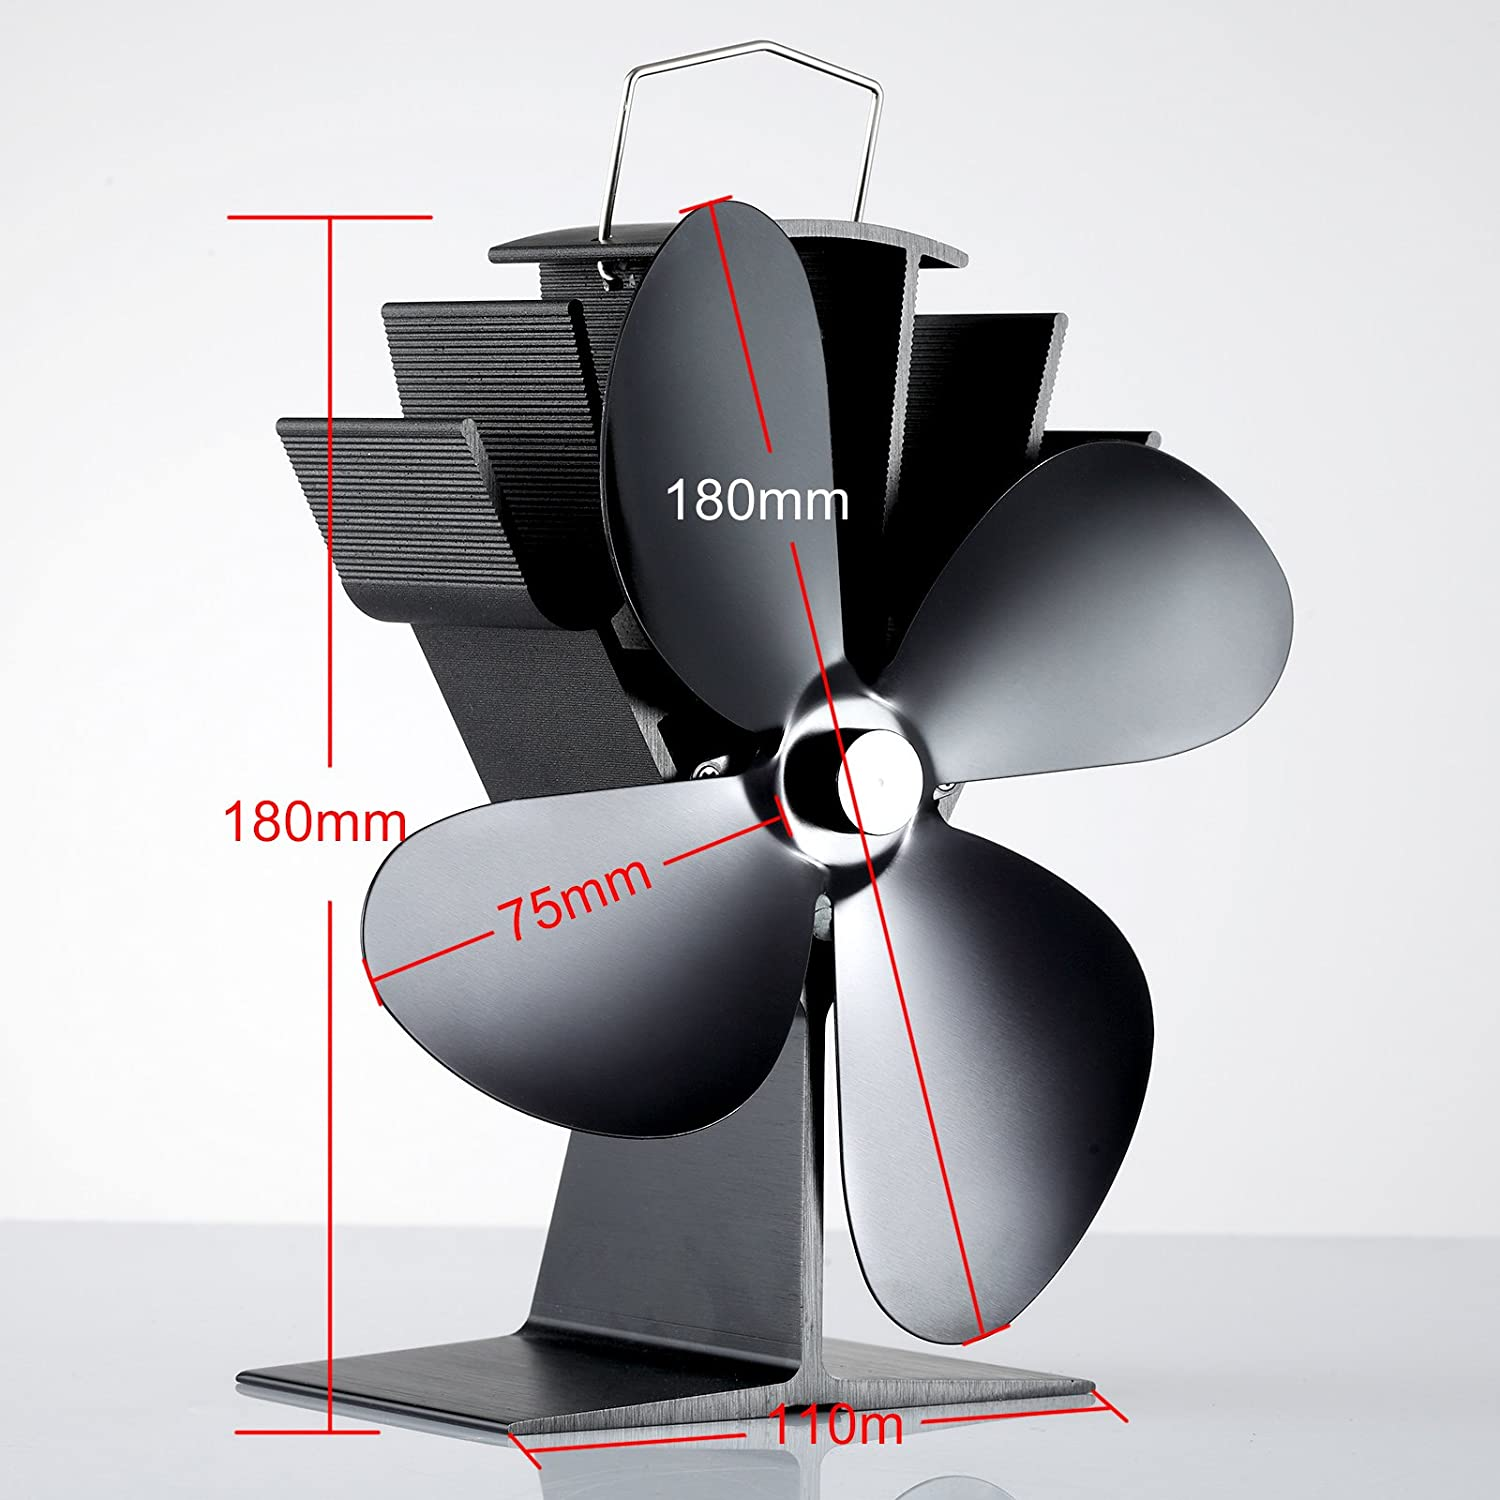 Heat powered fans for wood stoves - Tribesigns New Design 4 Blade Heat Powered Stove Fan For Wood Log Coal Burner Wood Stoves Eco Friendly Black Amazon Co Uk Diy Tools